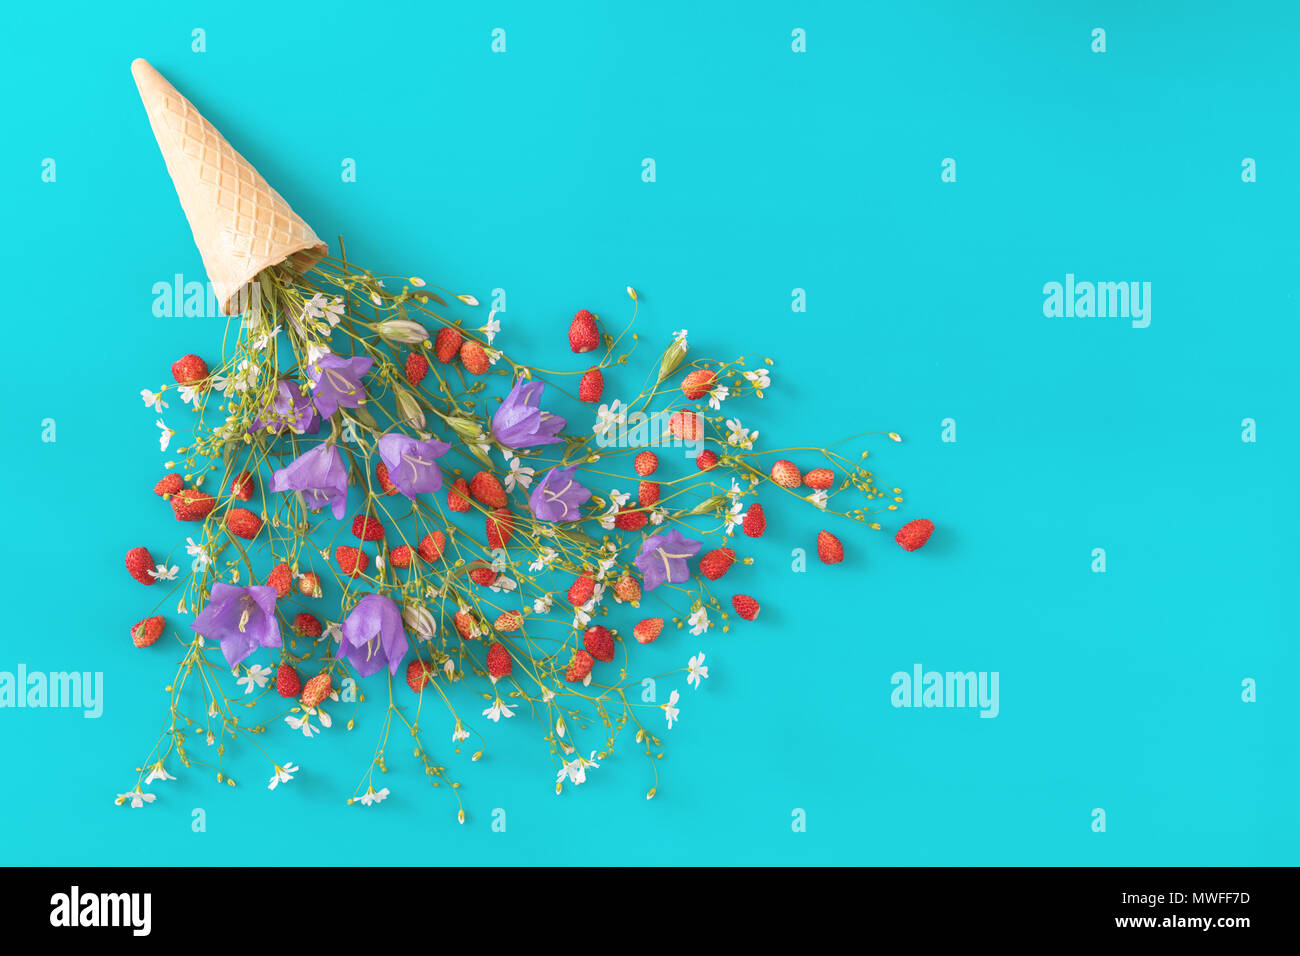 Waffle cone with wild strawberry and blue bells and white flowers blossom bouquets on blue surface. Flat lay, top view sweet food floral background. - Stock Image